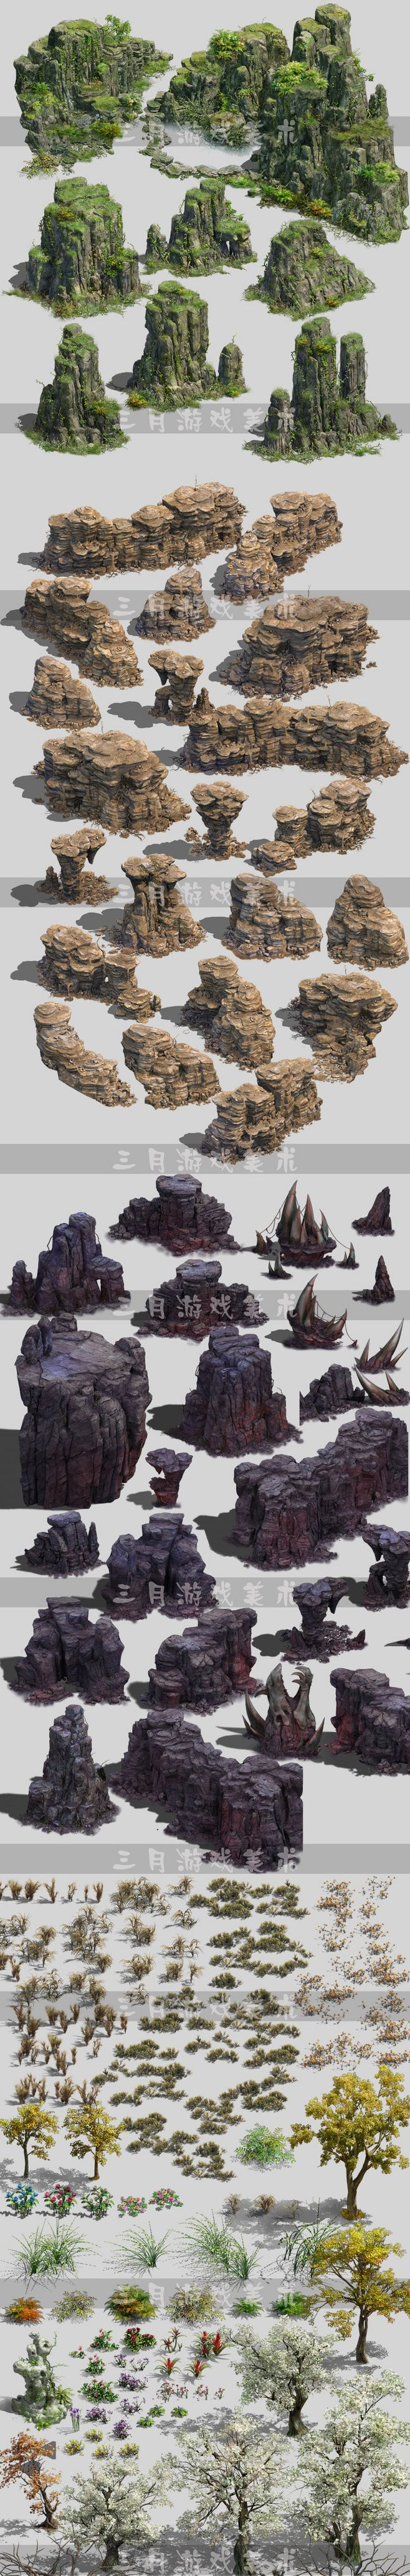 Game art game scene to compile resource material 2.5D realistic ...